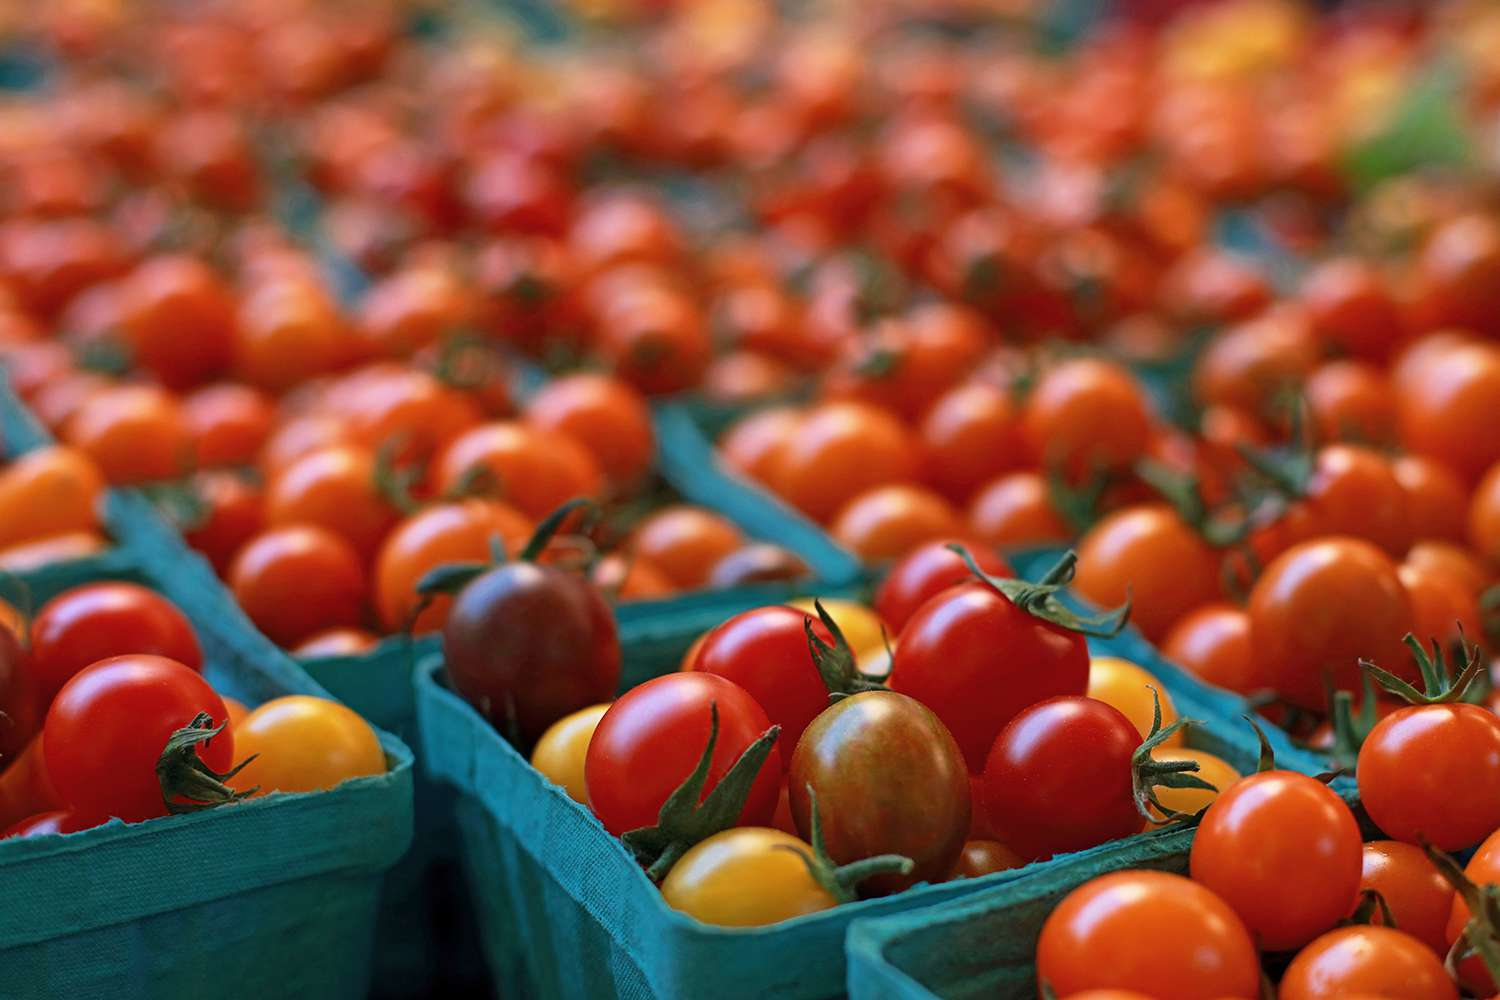 A photograph of Cherry Tomatoes displayed at a farmers market for sale.